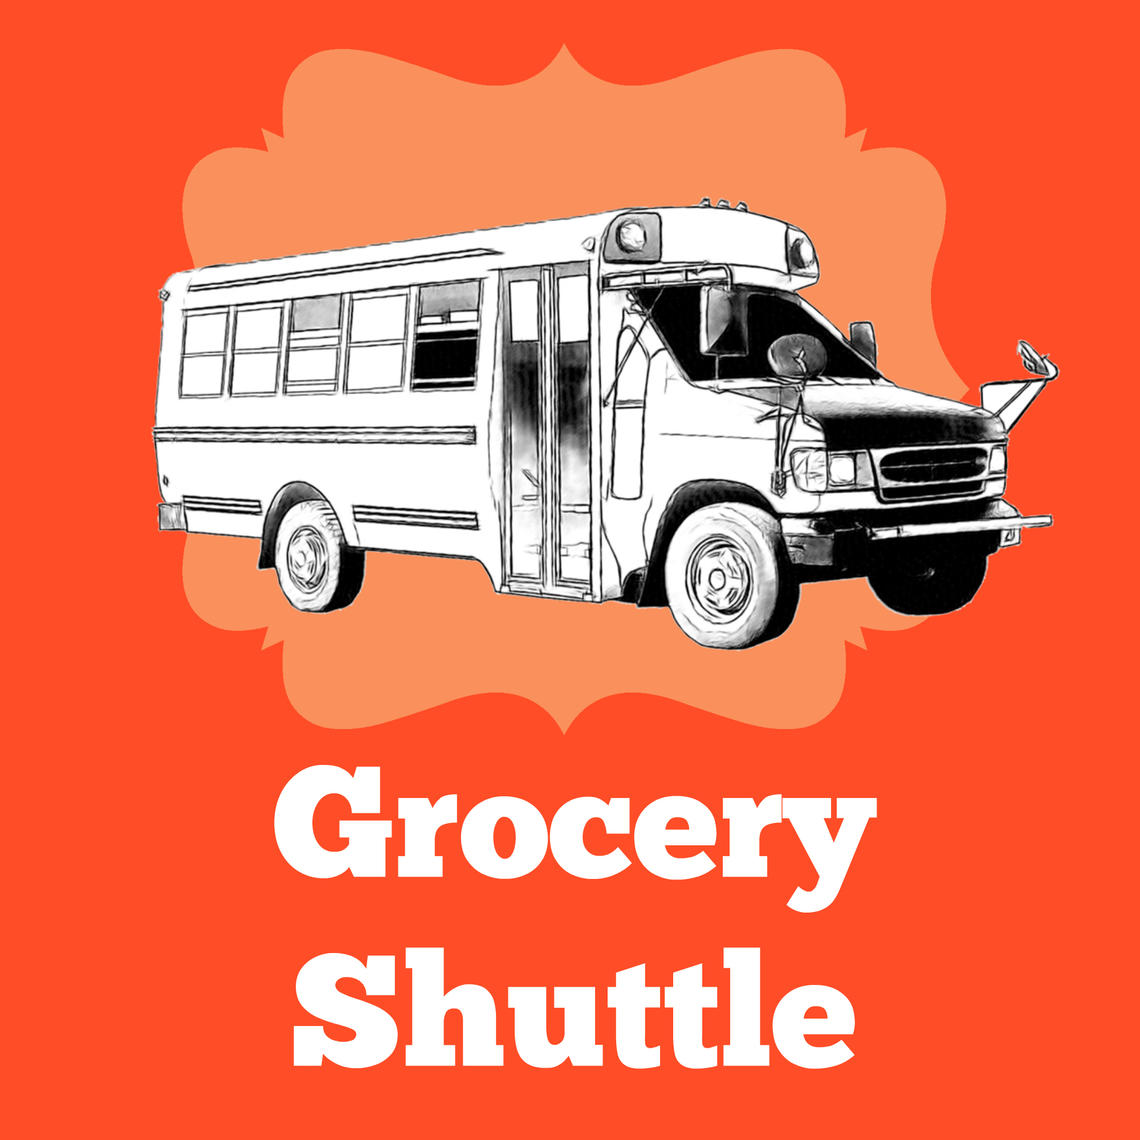 Free, Food, Grocery Shuttle, Groceries, VIU, Vancouver Island Univeristy, VIU International Education, VIU Residences, Student Residences